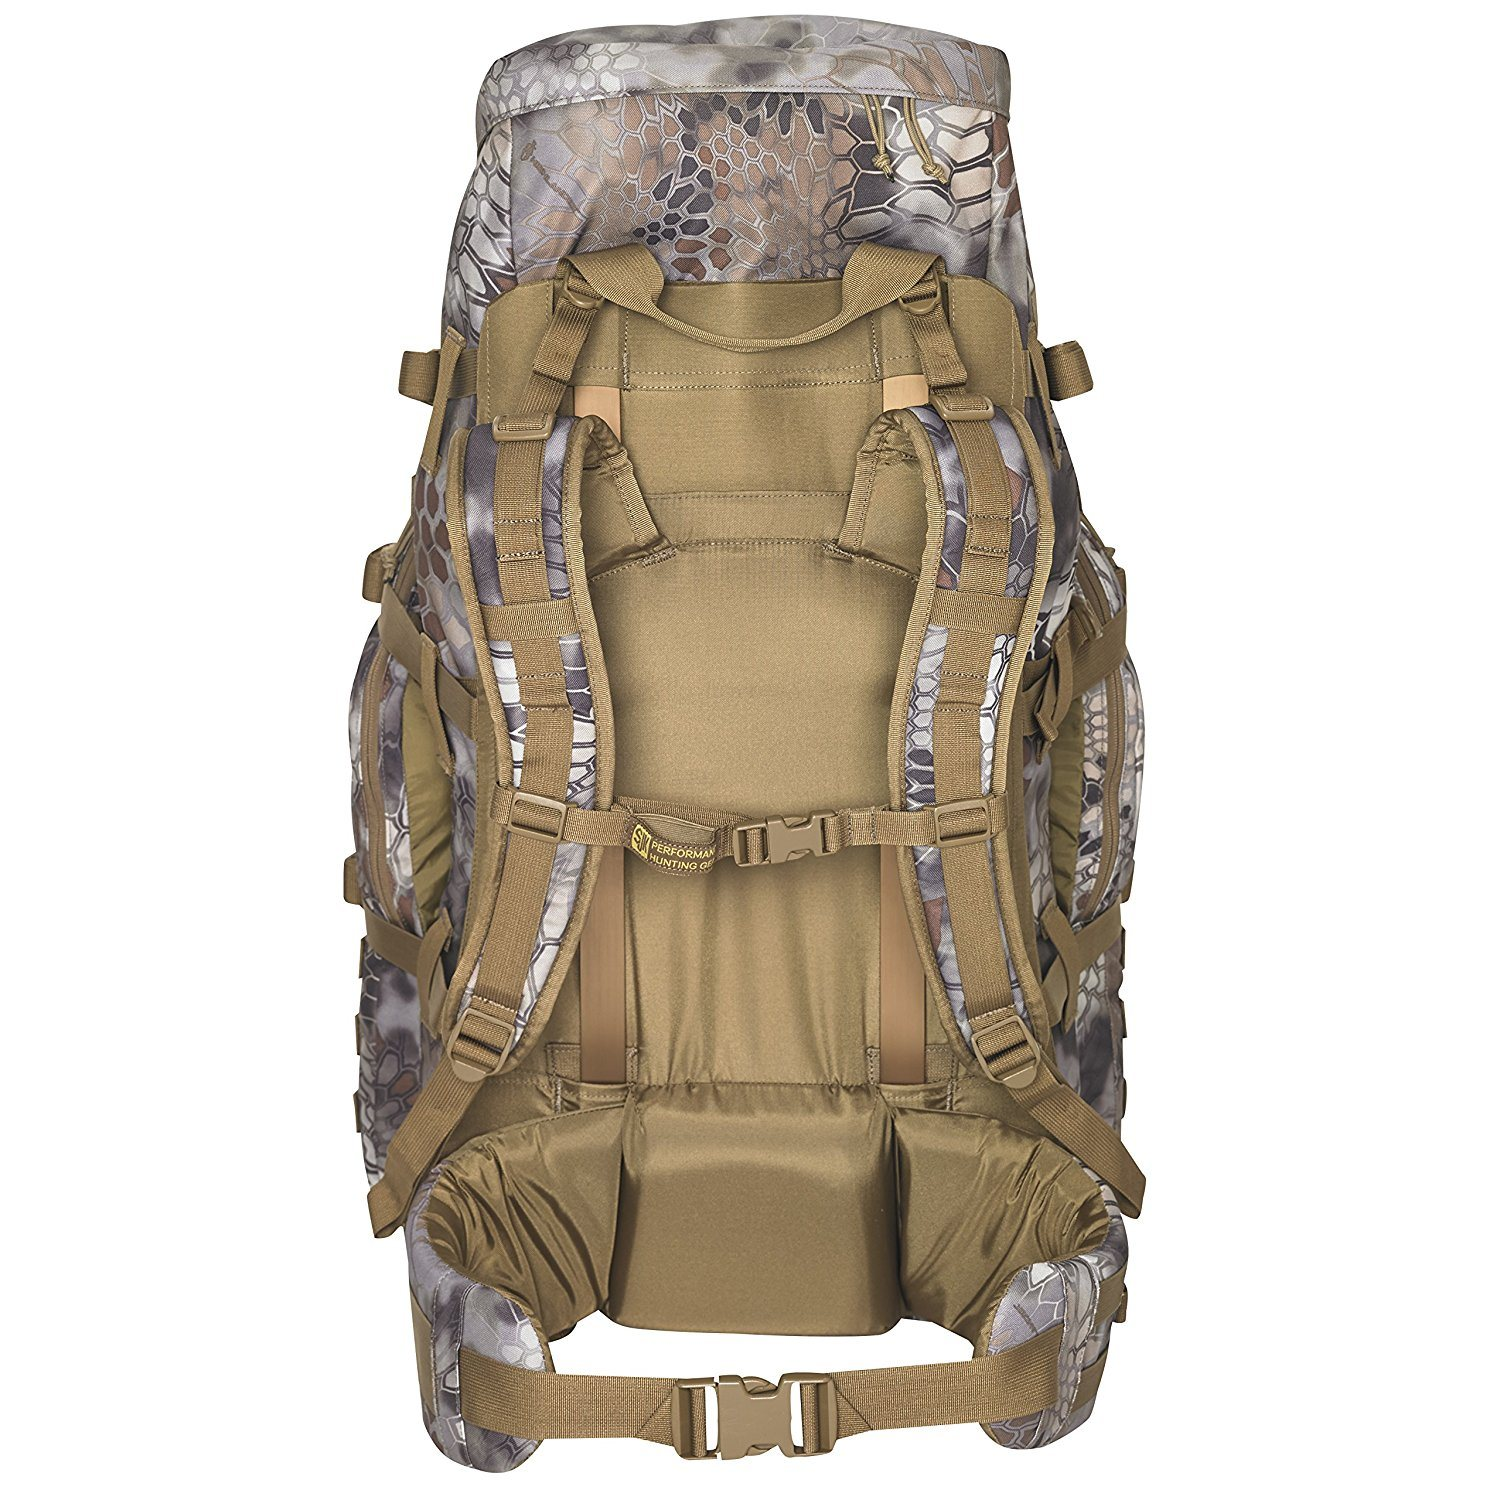 Camo Comfortable Huting Backpack